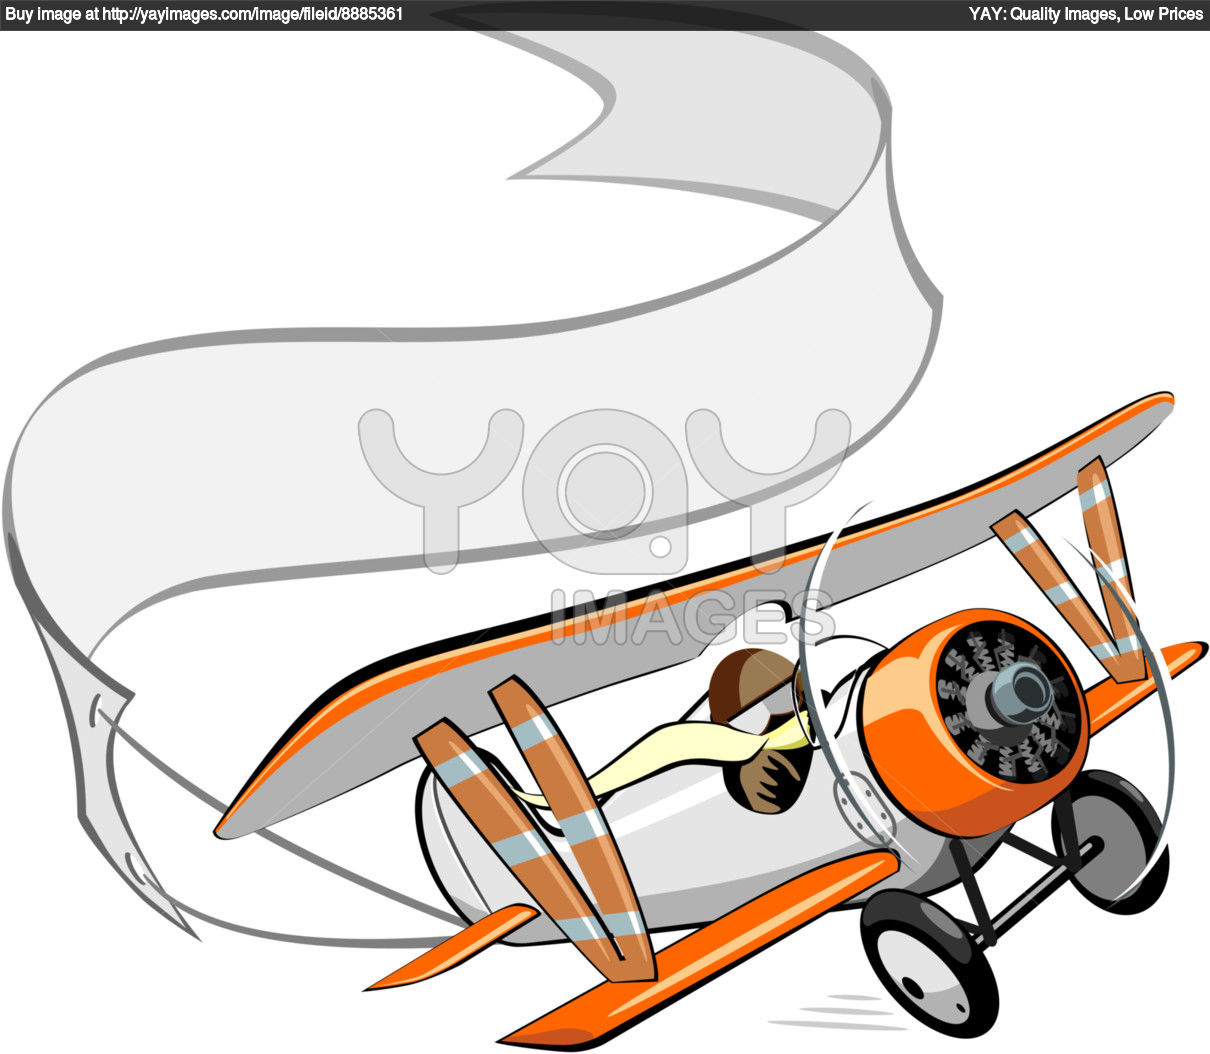 airplane with banner vector clipart panda free clipart images rh clipartpanda com plane with banner clipart plane with banner clipart